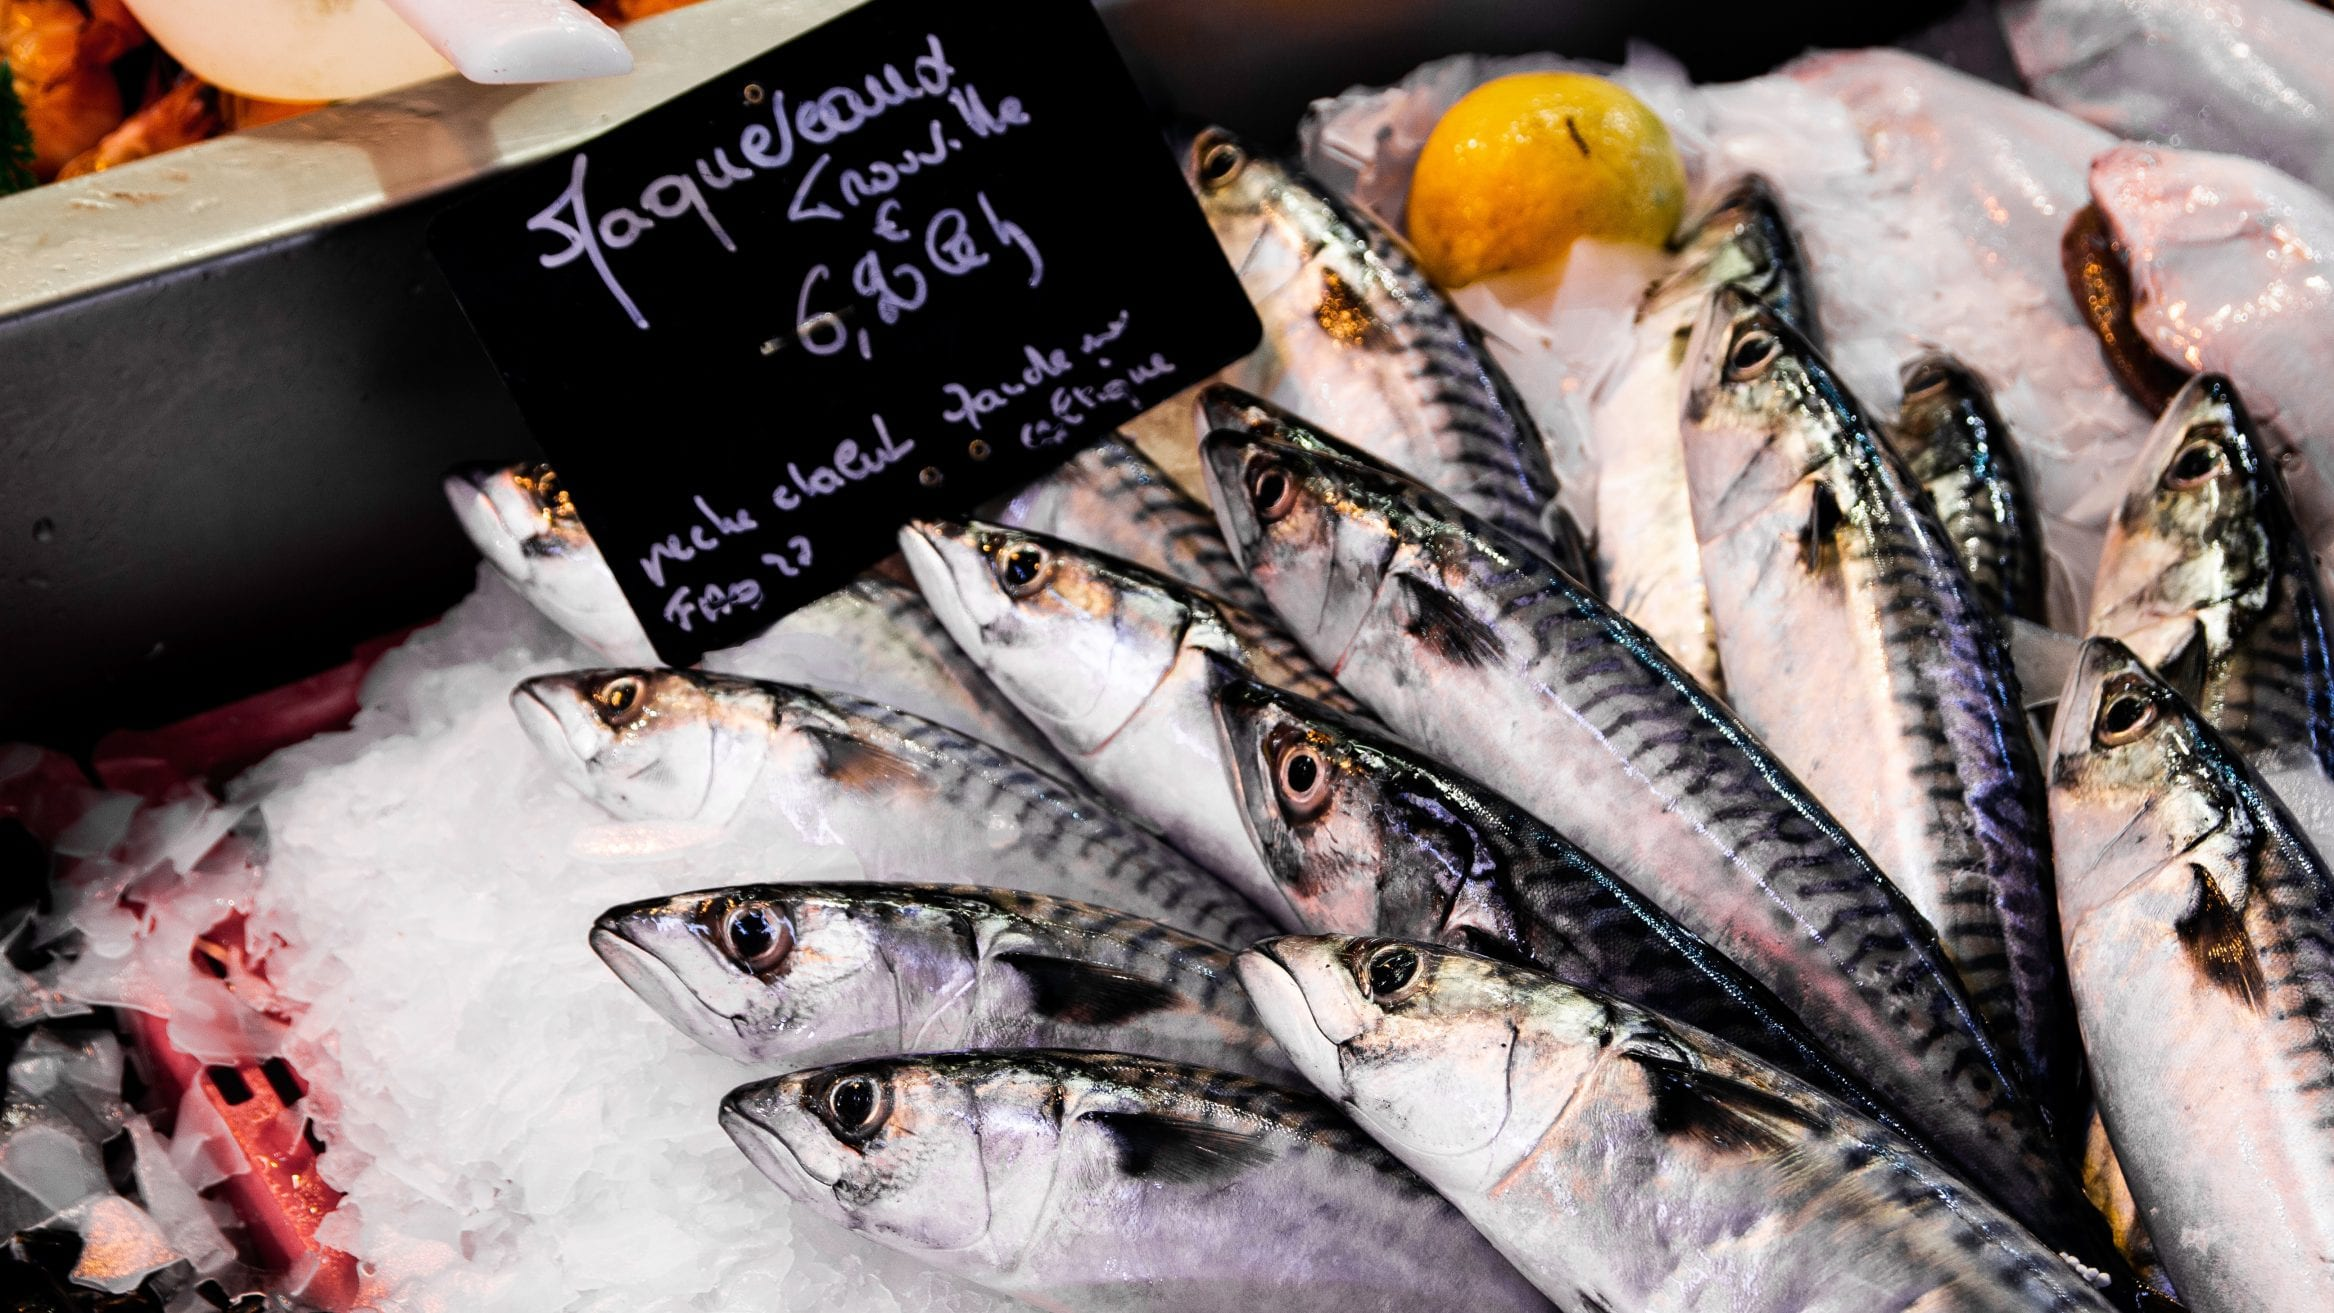 Marine Conservation Society launches campaign to support sustainable seafood in 2020 - Oceanographic